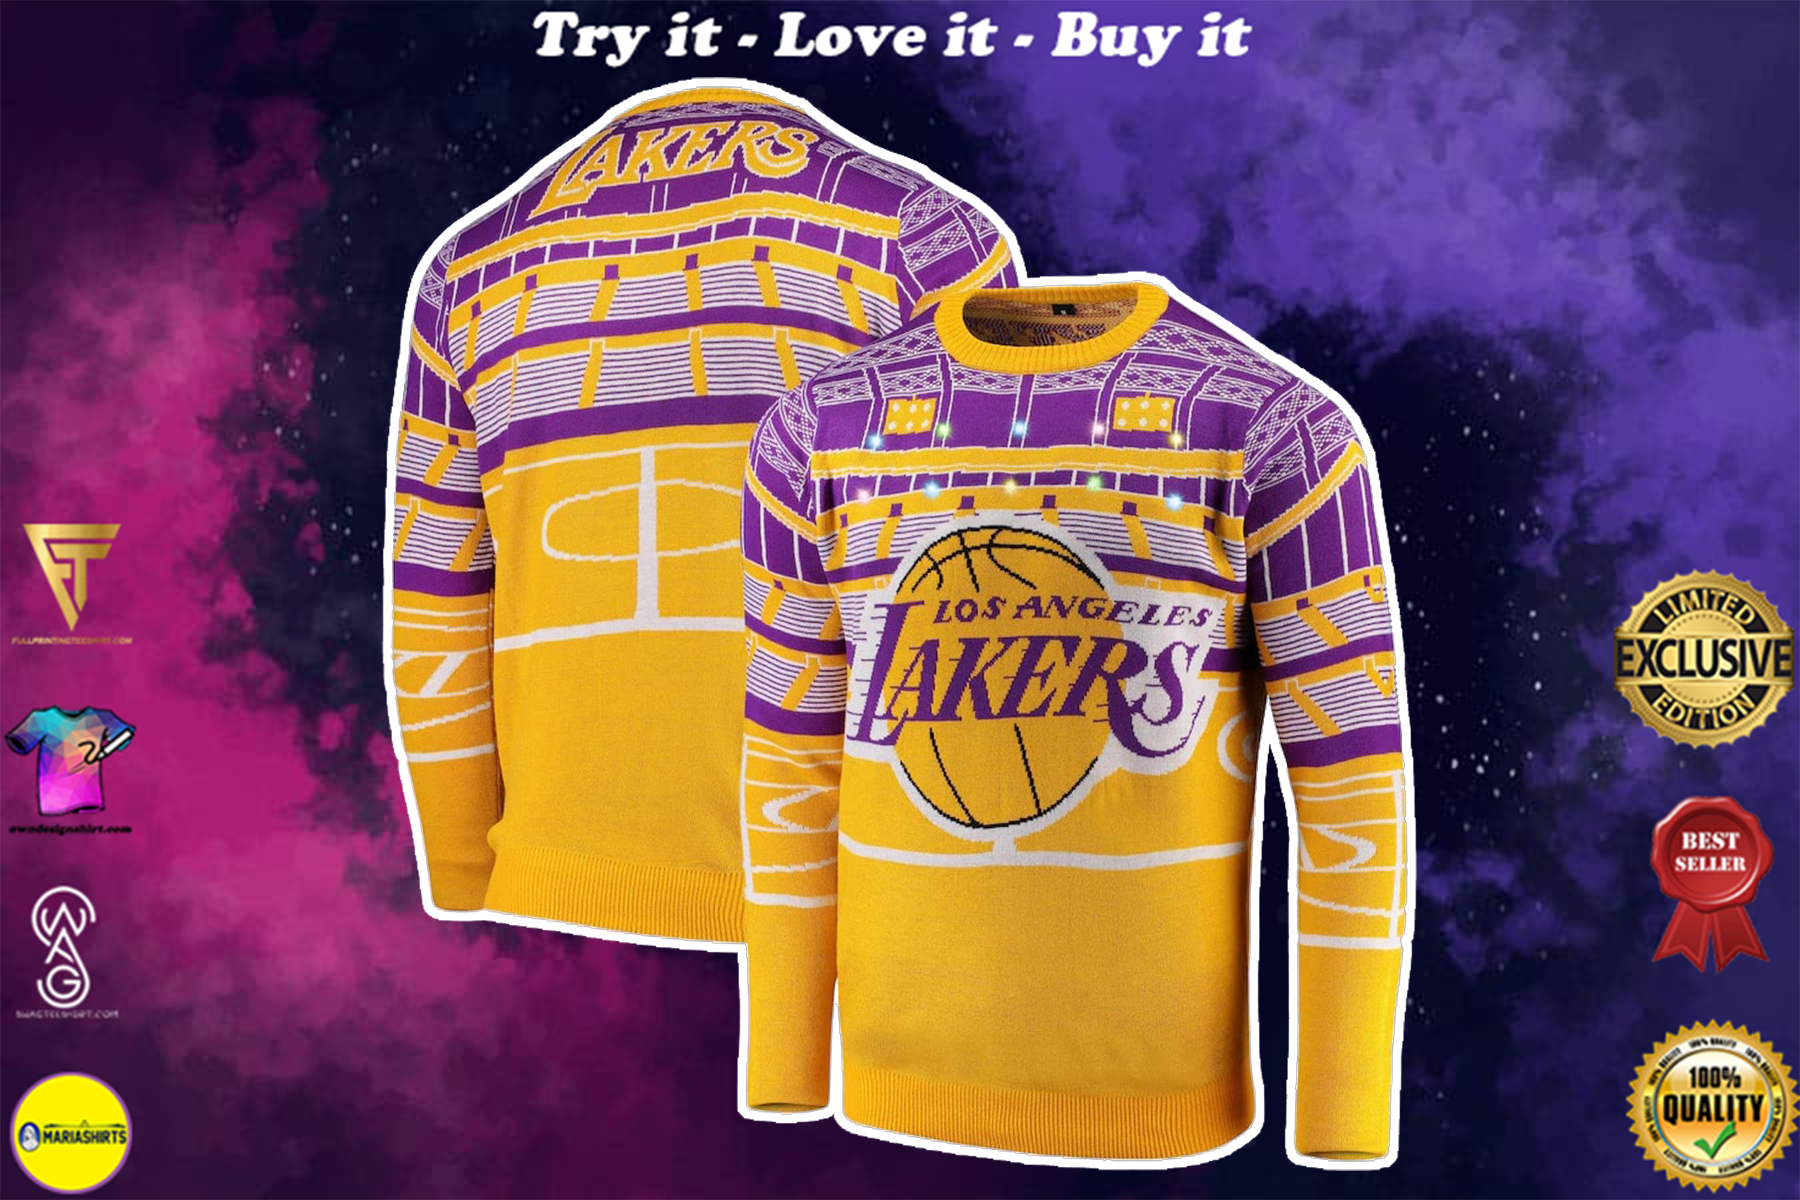 los angeles lakers champions all over printed ugly christmas sweater 2 - Copy (3)